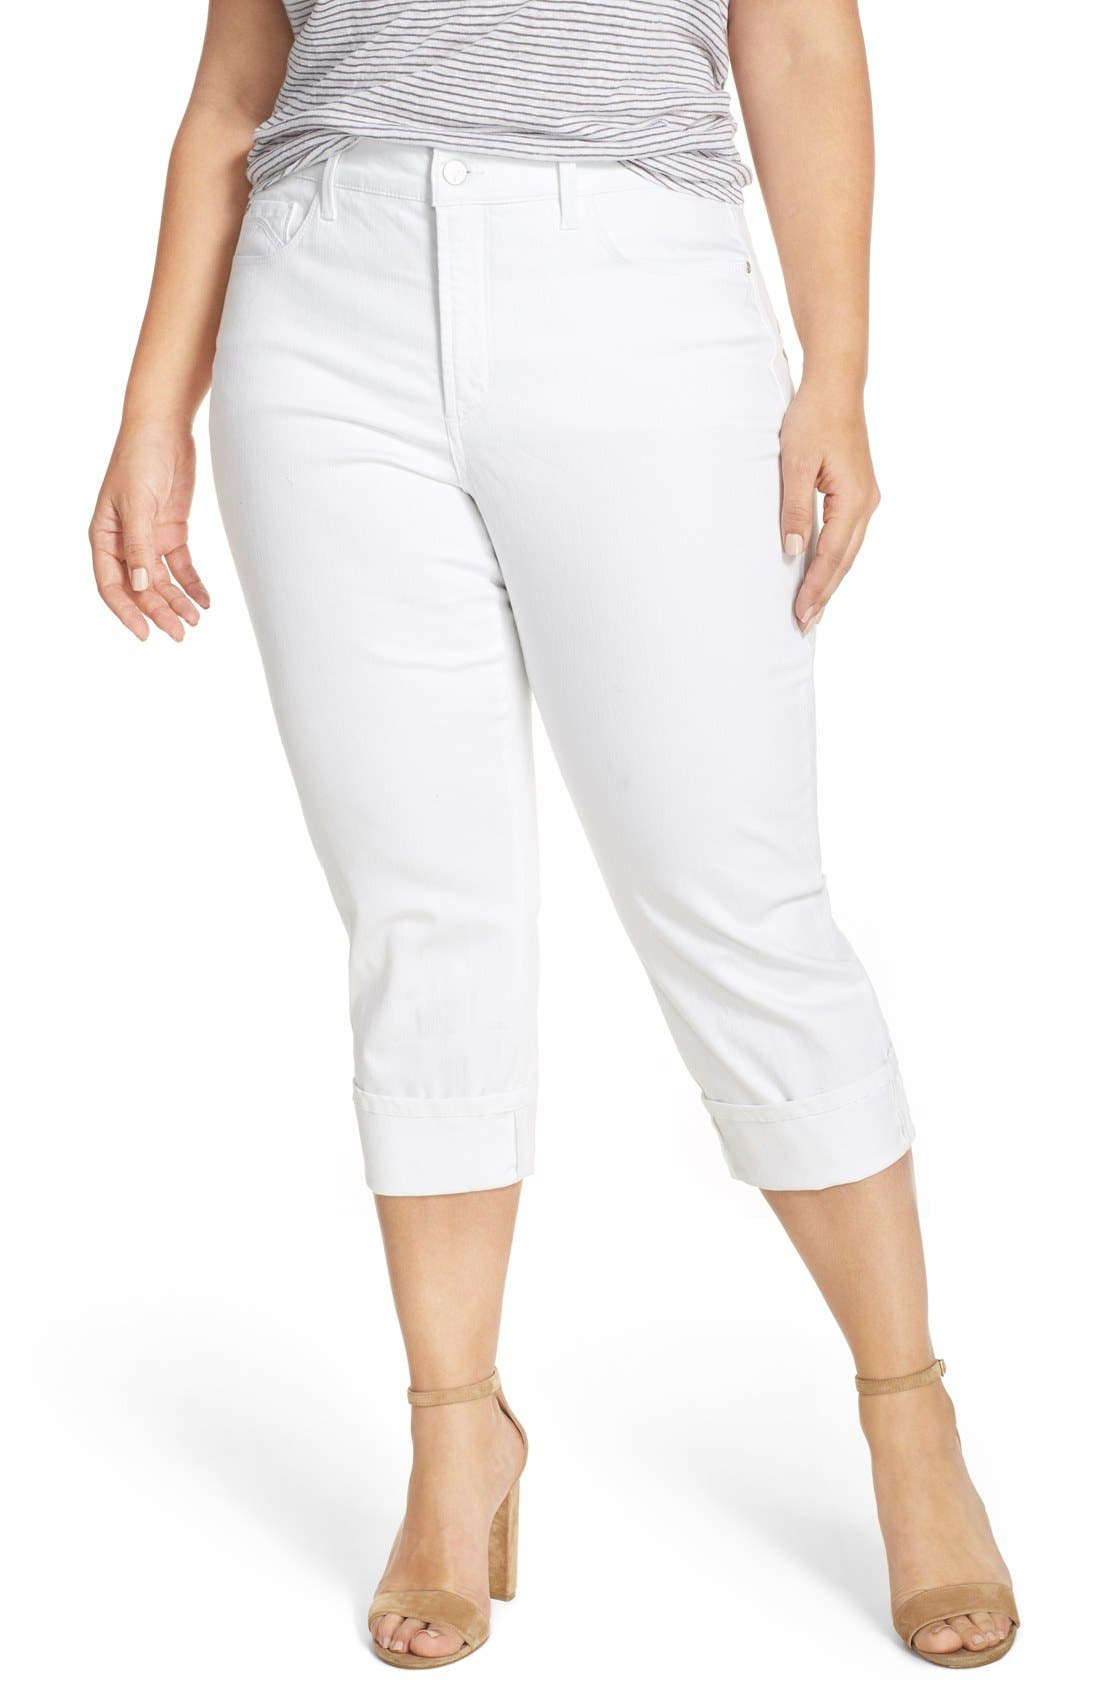 Alternate Image 1 Selected - NYDJ 'Dayla' Wide Cuff Stretch Crop Boyfriend Jeans (Plus Size)